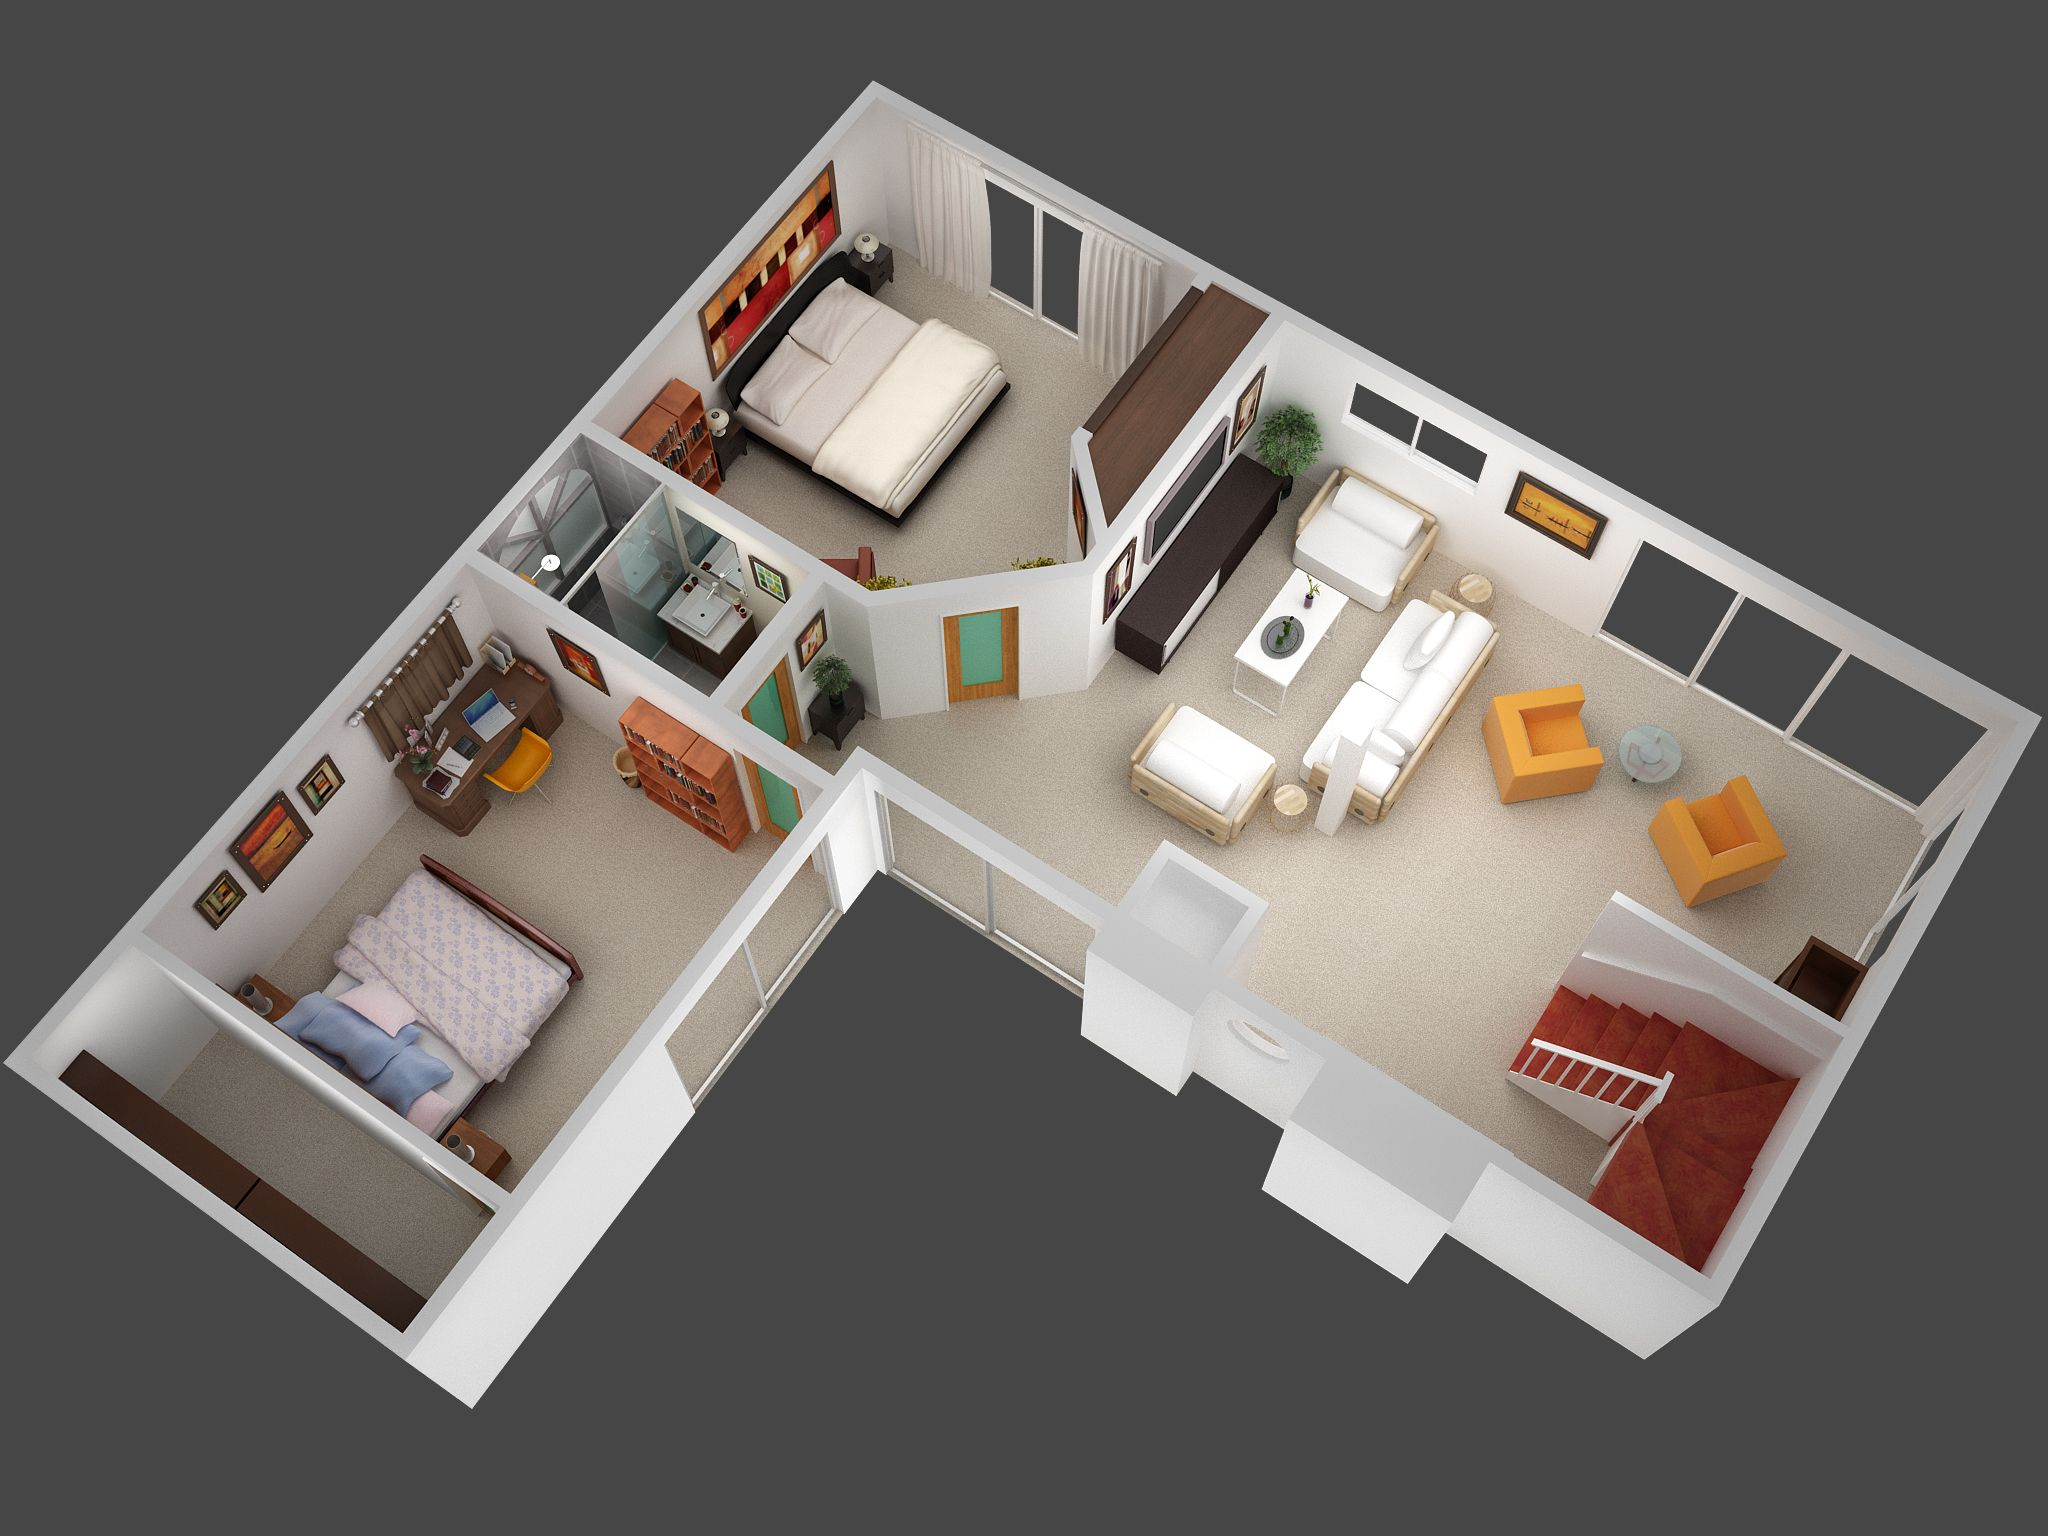 home floor plans small home plans one bedroom house plans plane 3d